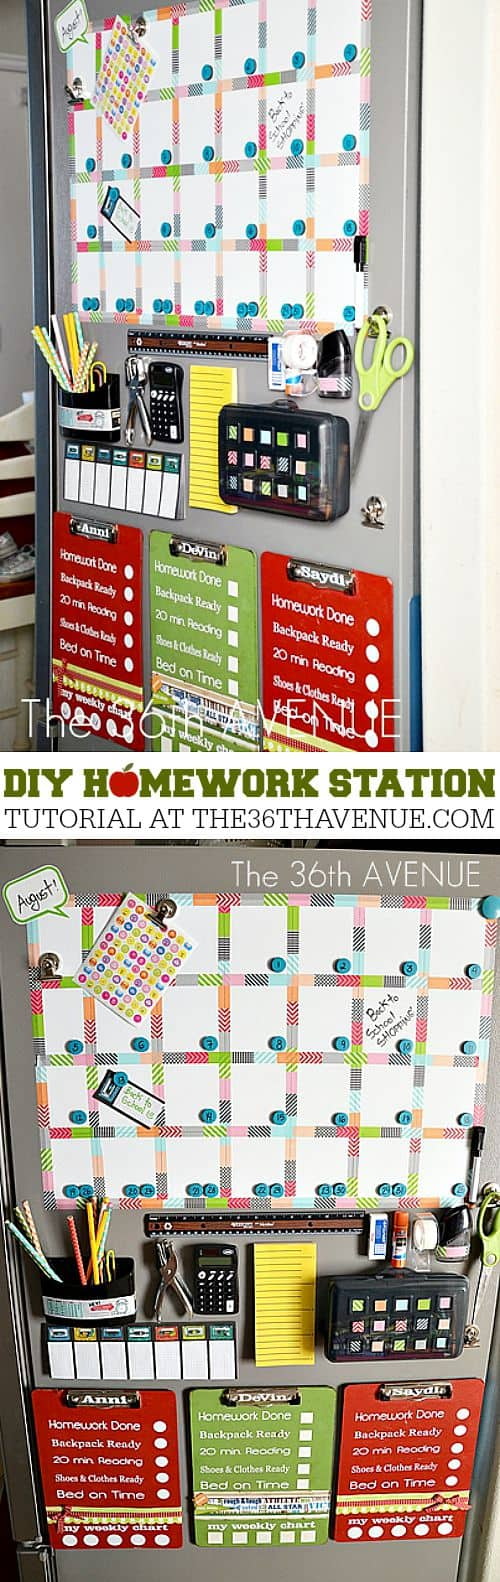 diy-homework-station